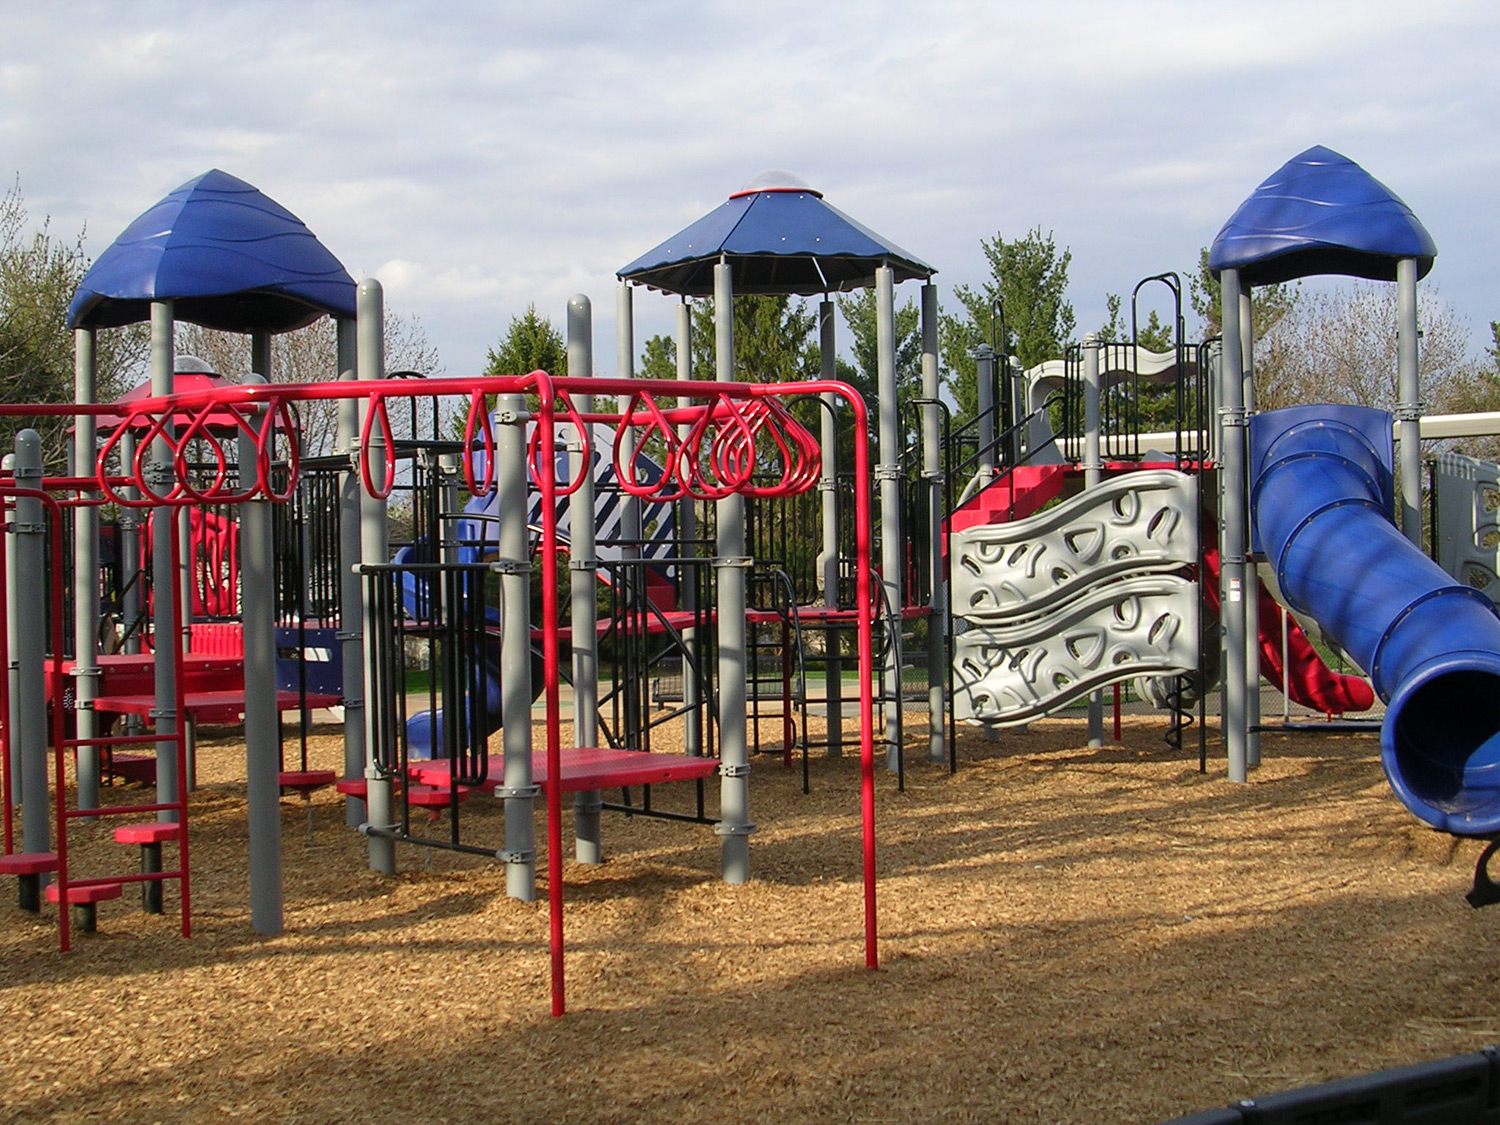 A favorite part of the playground is the climbing area where many different options for overhead activity can be found.